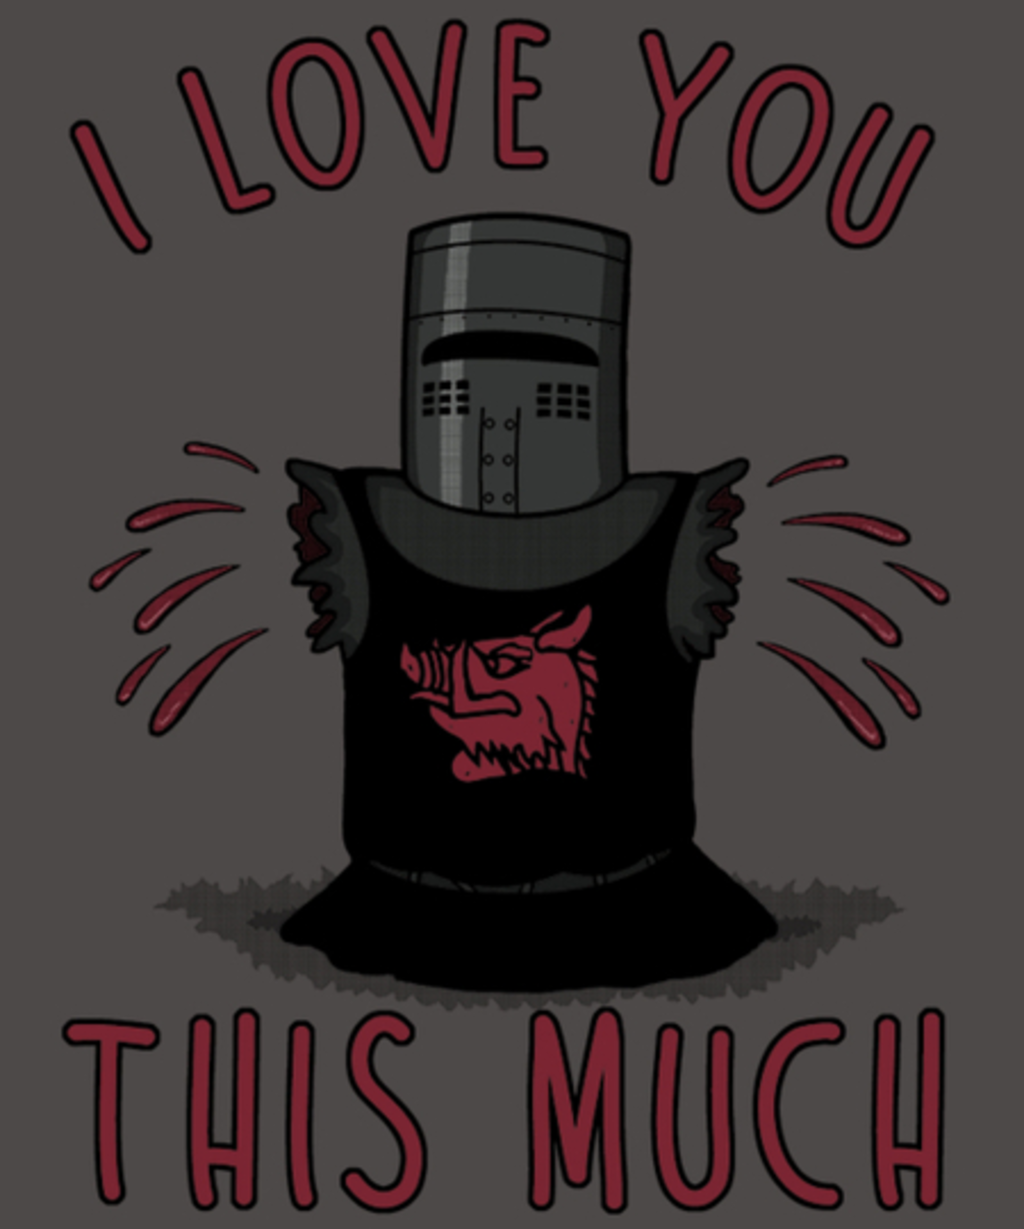 Qwertee: This Much!